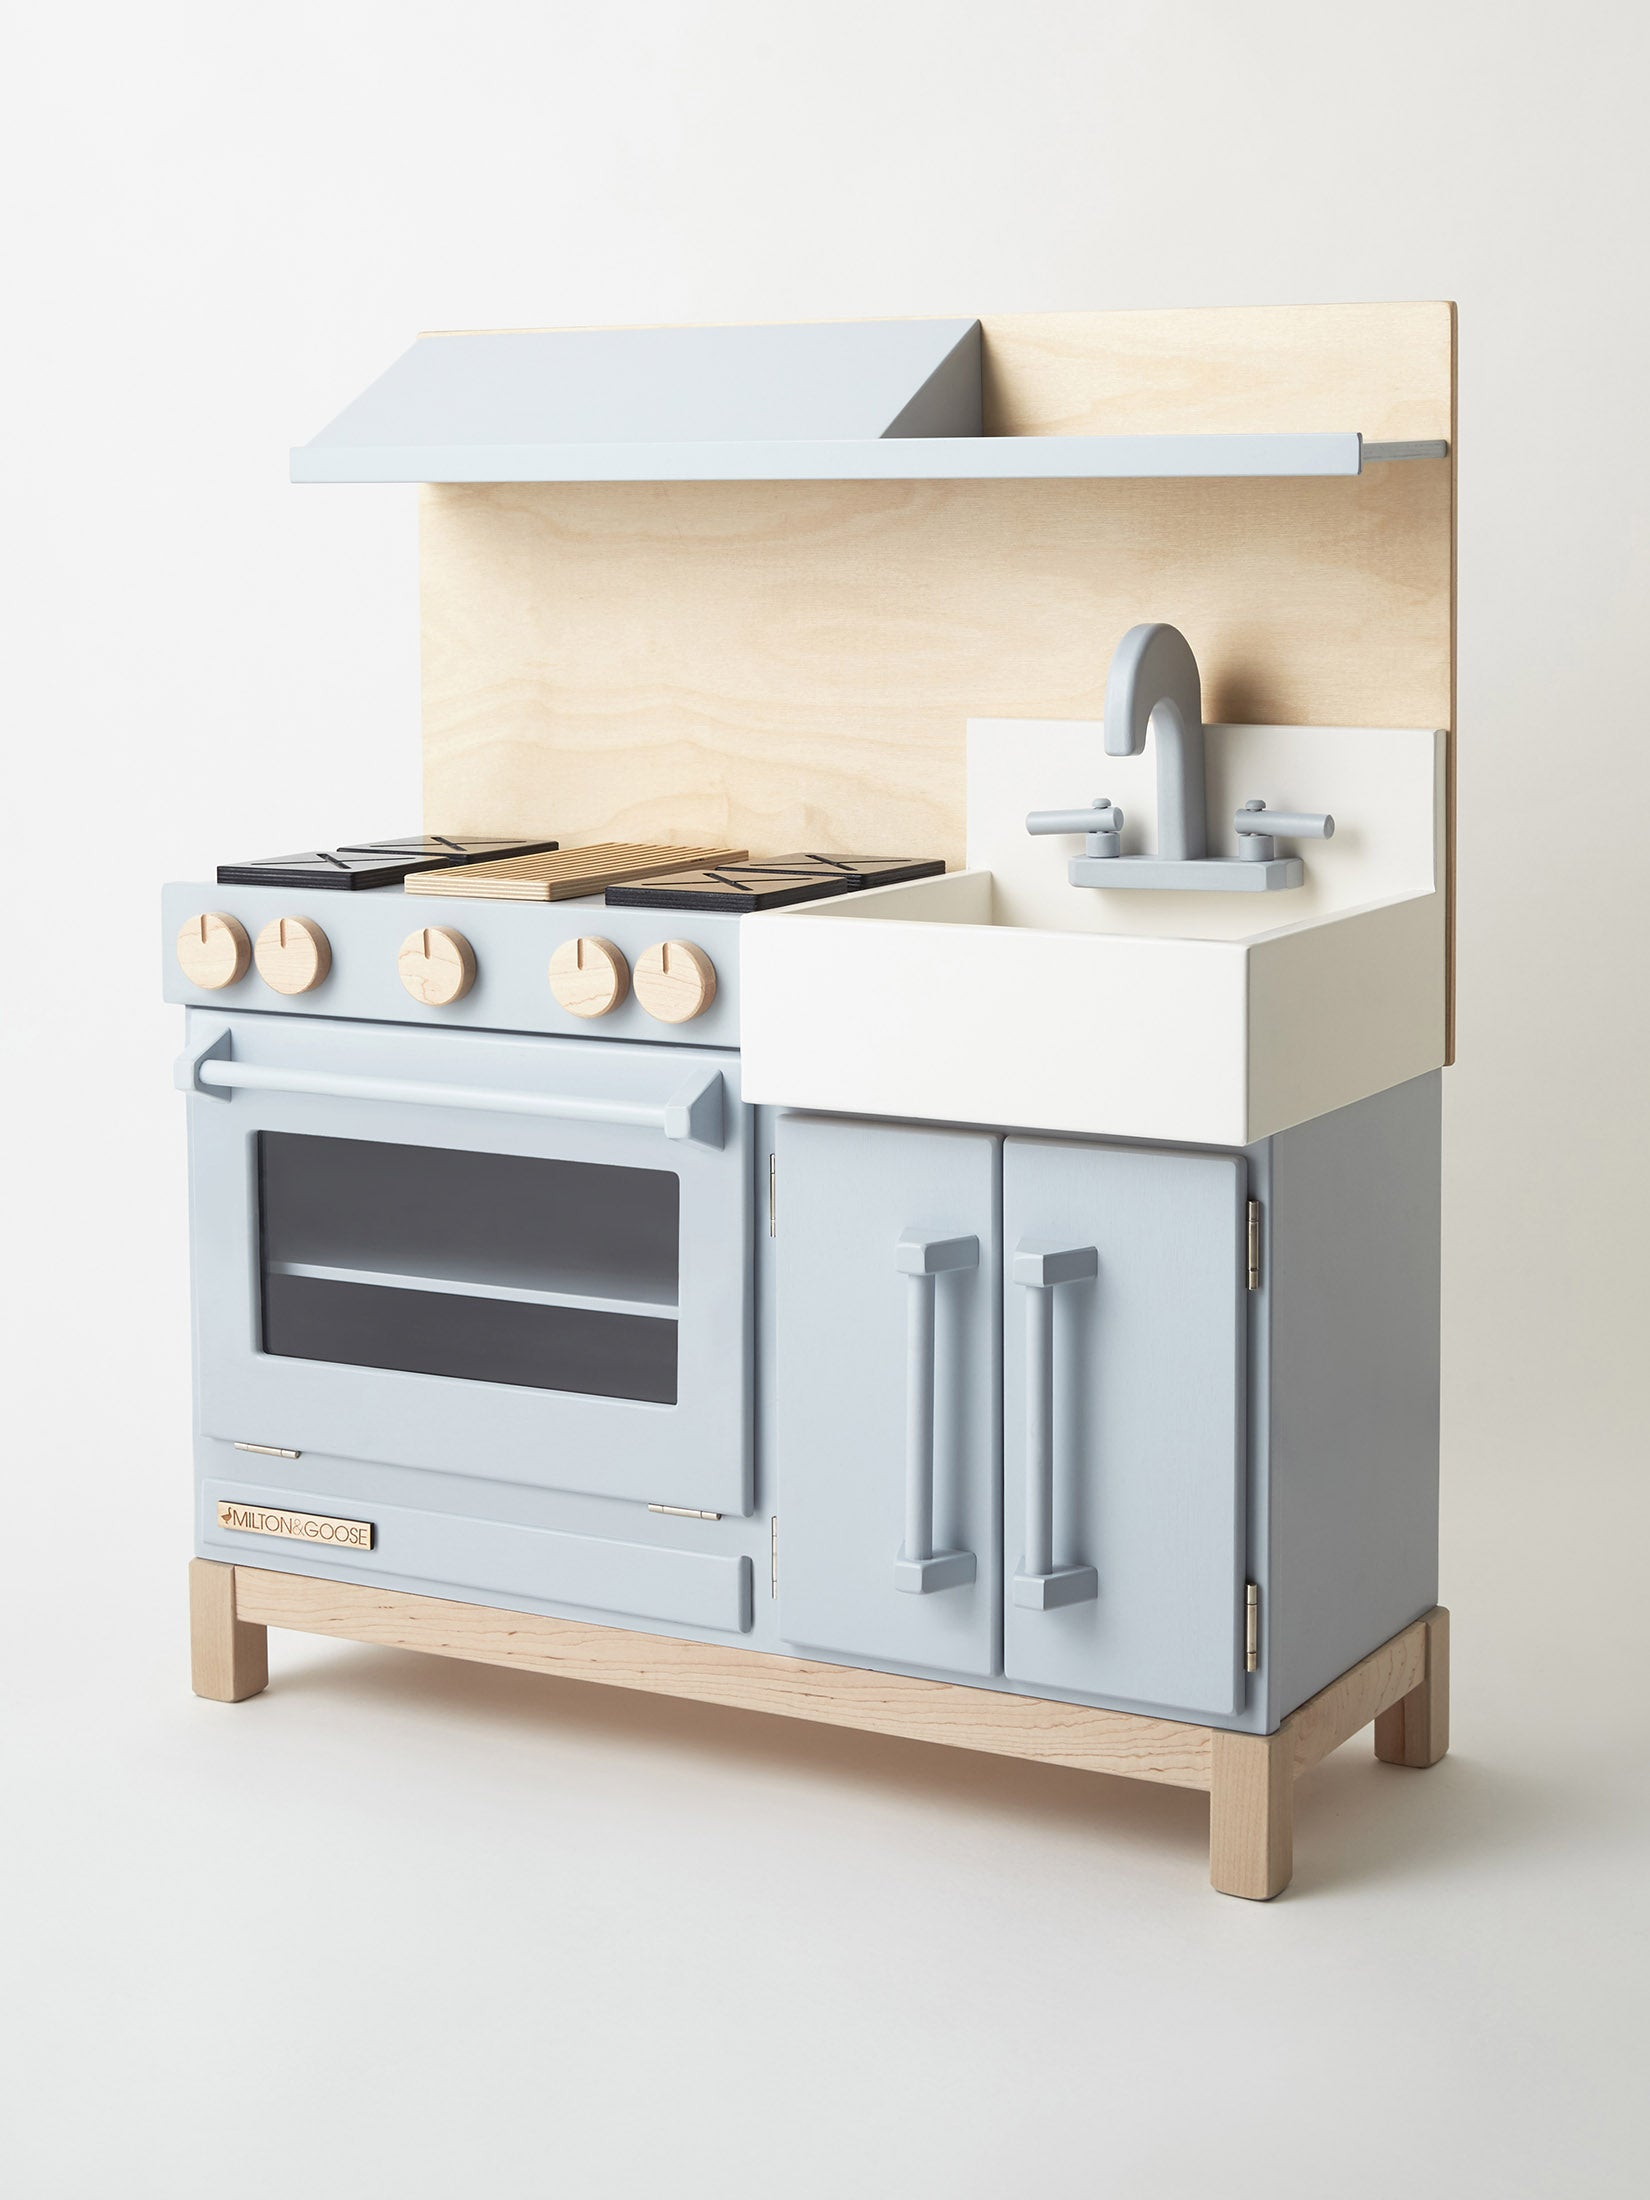 kids wooden play kitchen - Play Kitchen